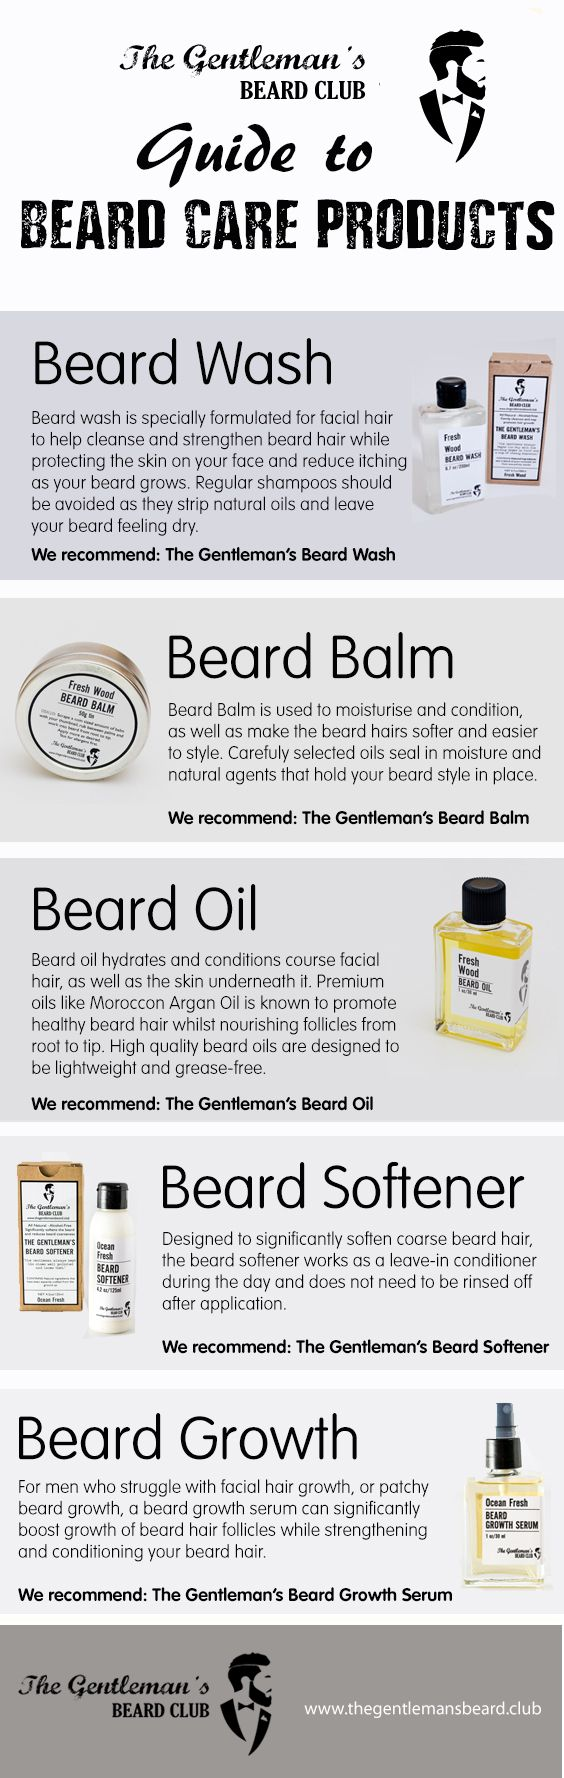 Struggling with beard growth, have a question about beard oil or just want to know how to moisturise or condition your beard for a softer and healthier feel? The Gentleman's Beard Club has this easy to read Guide to Beard Care Products to answer all your grooming questions (and there's also some great ideas for Christmas Gifts)!